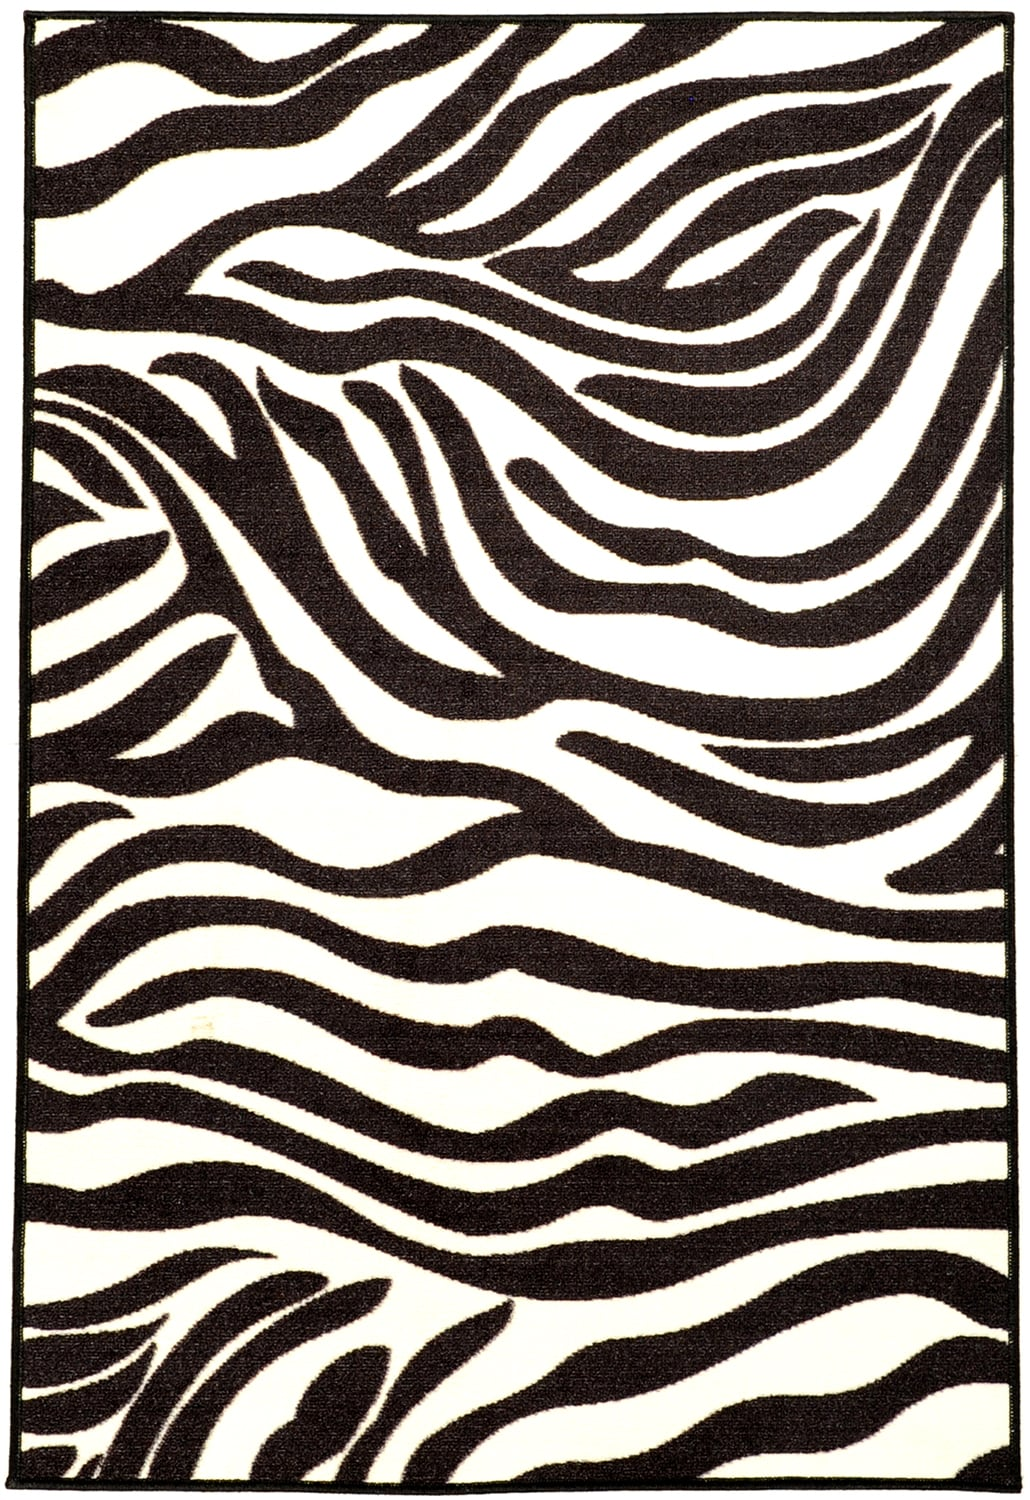 Pink Collection White, Black Animal Print Zebra Design Area Rug (3'3 x 5')